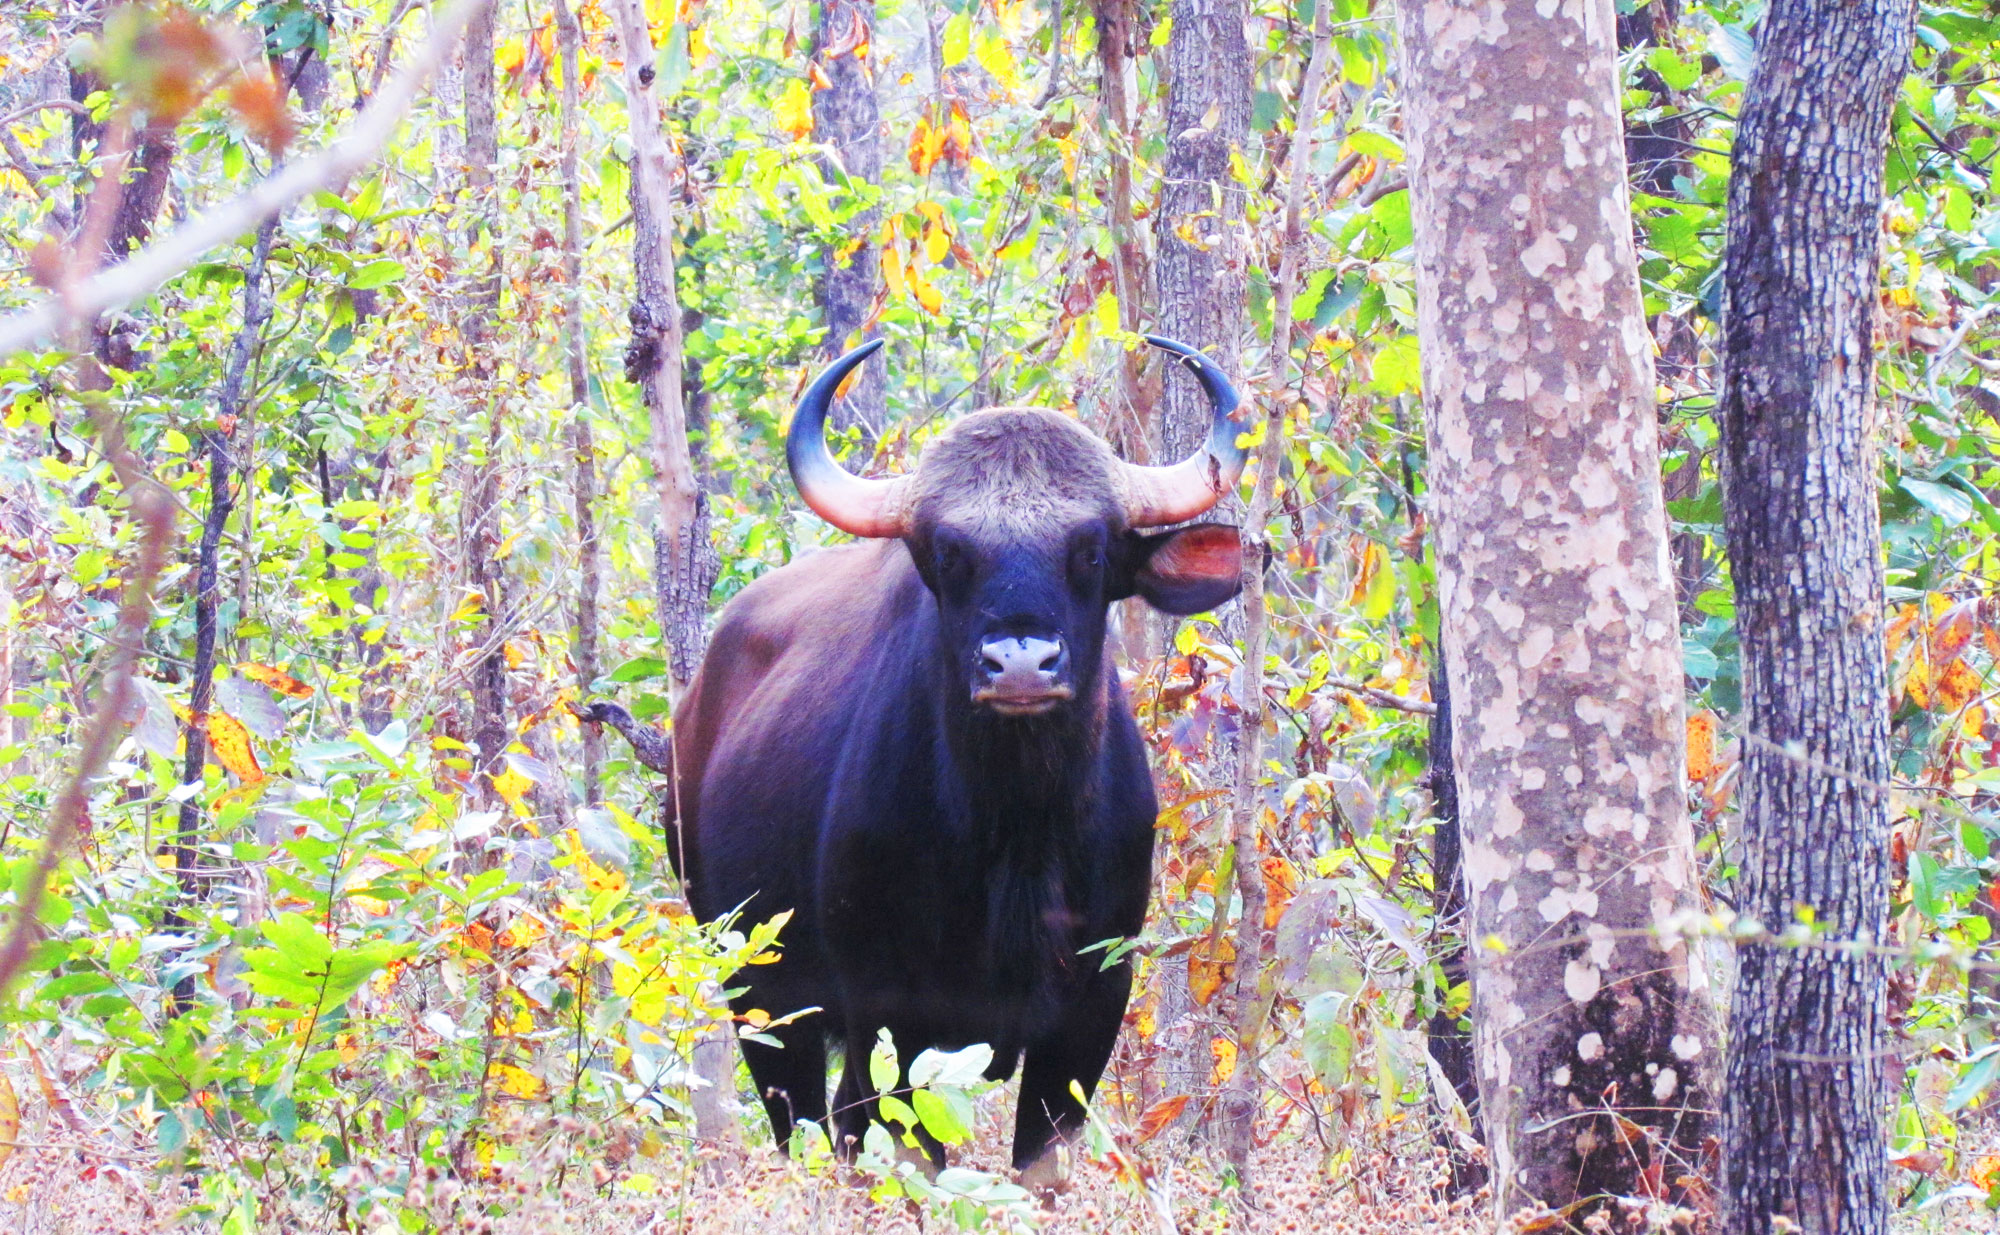 Chhattisgarh Wildlife